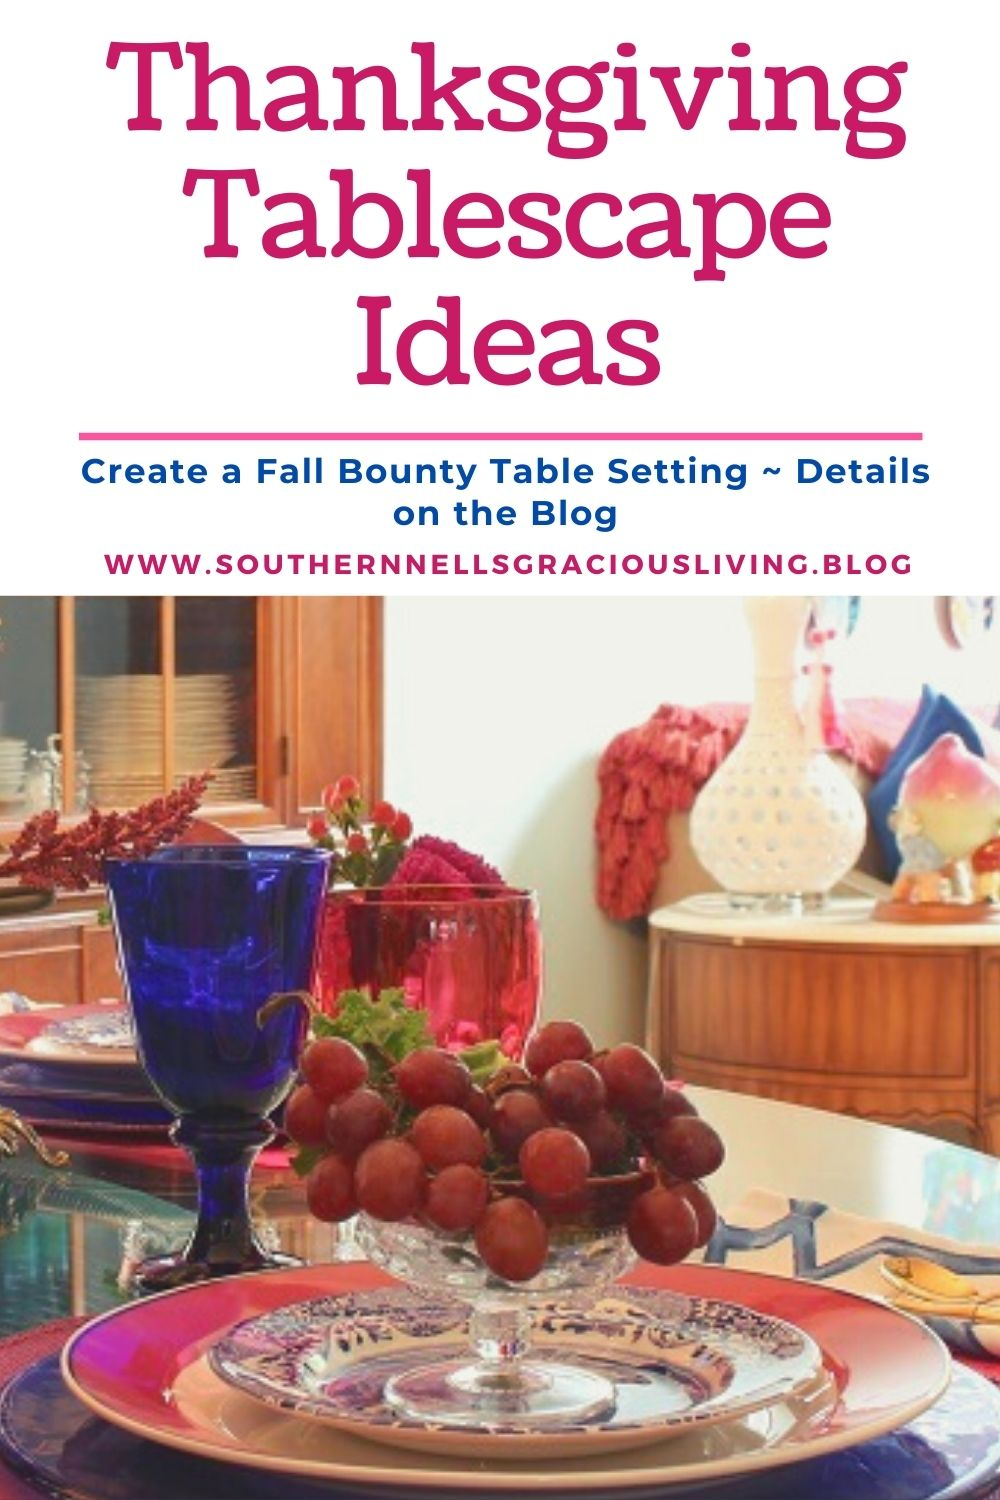 Autumn Bounty Table Setting